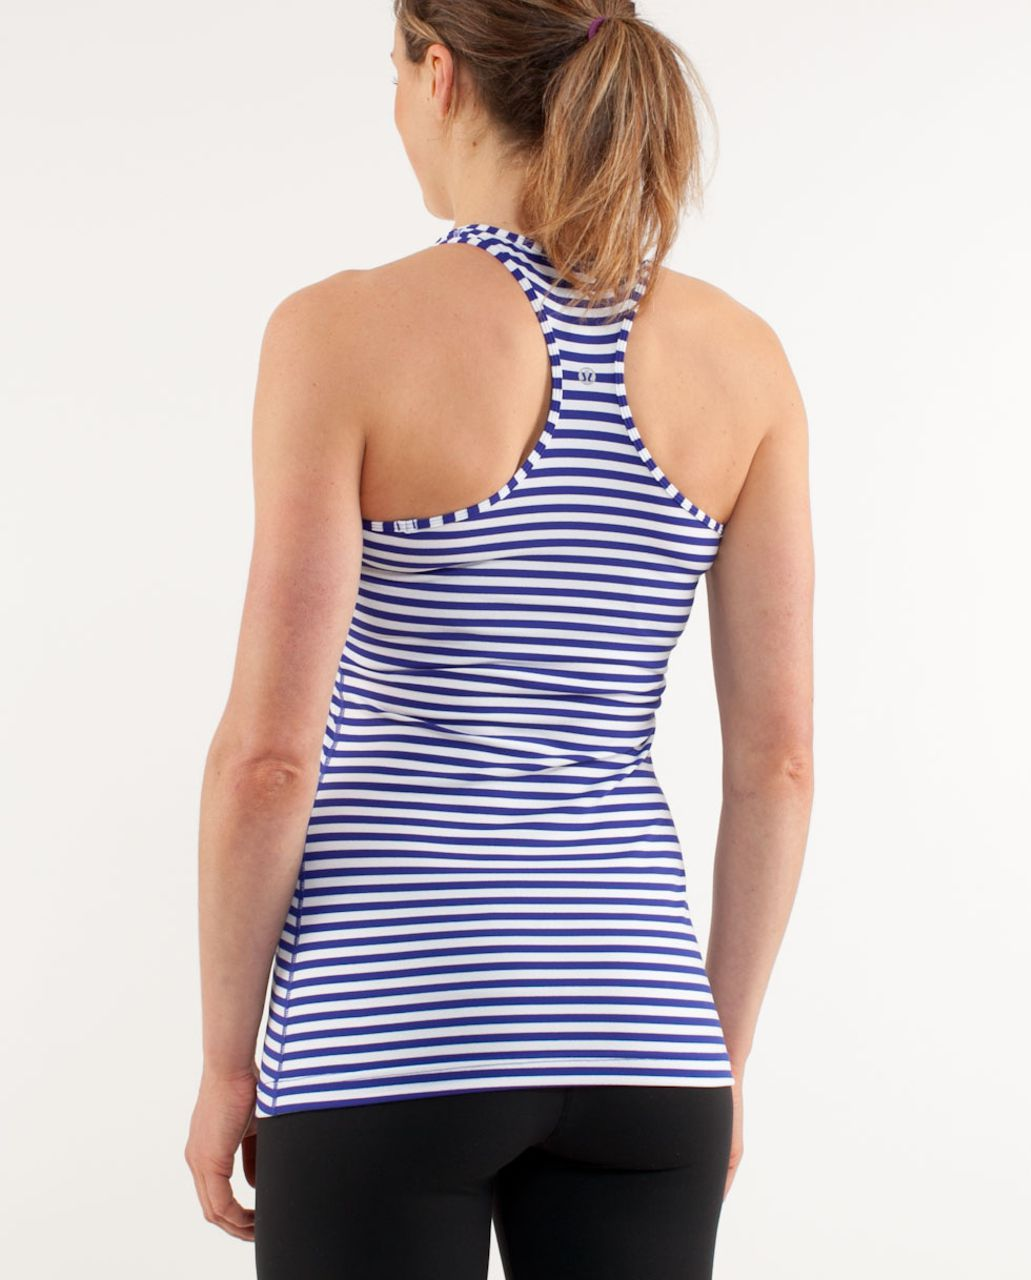 Lululemon Cool Racerback - Pigment Blue White Narrow Bold Stripe